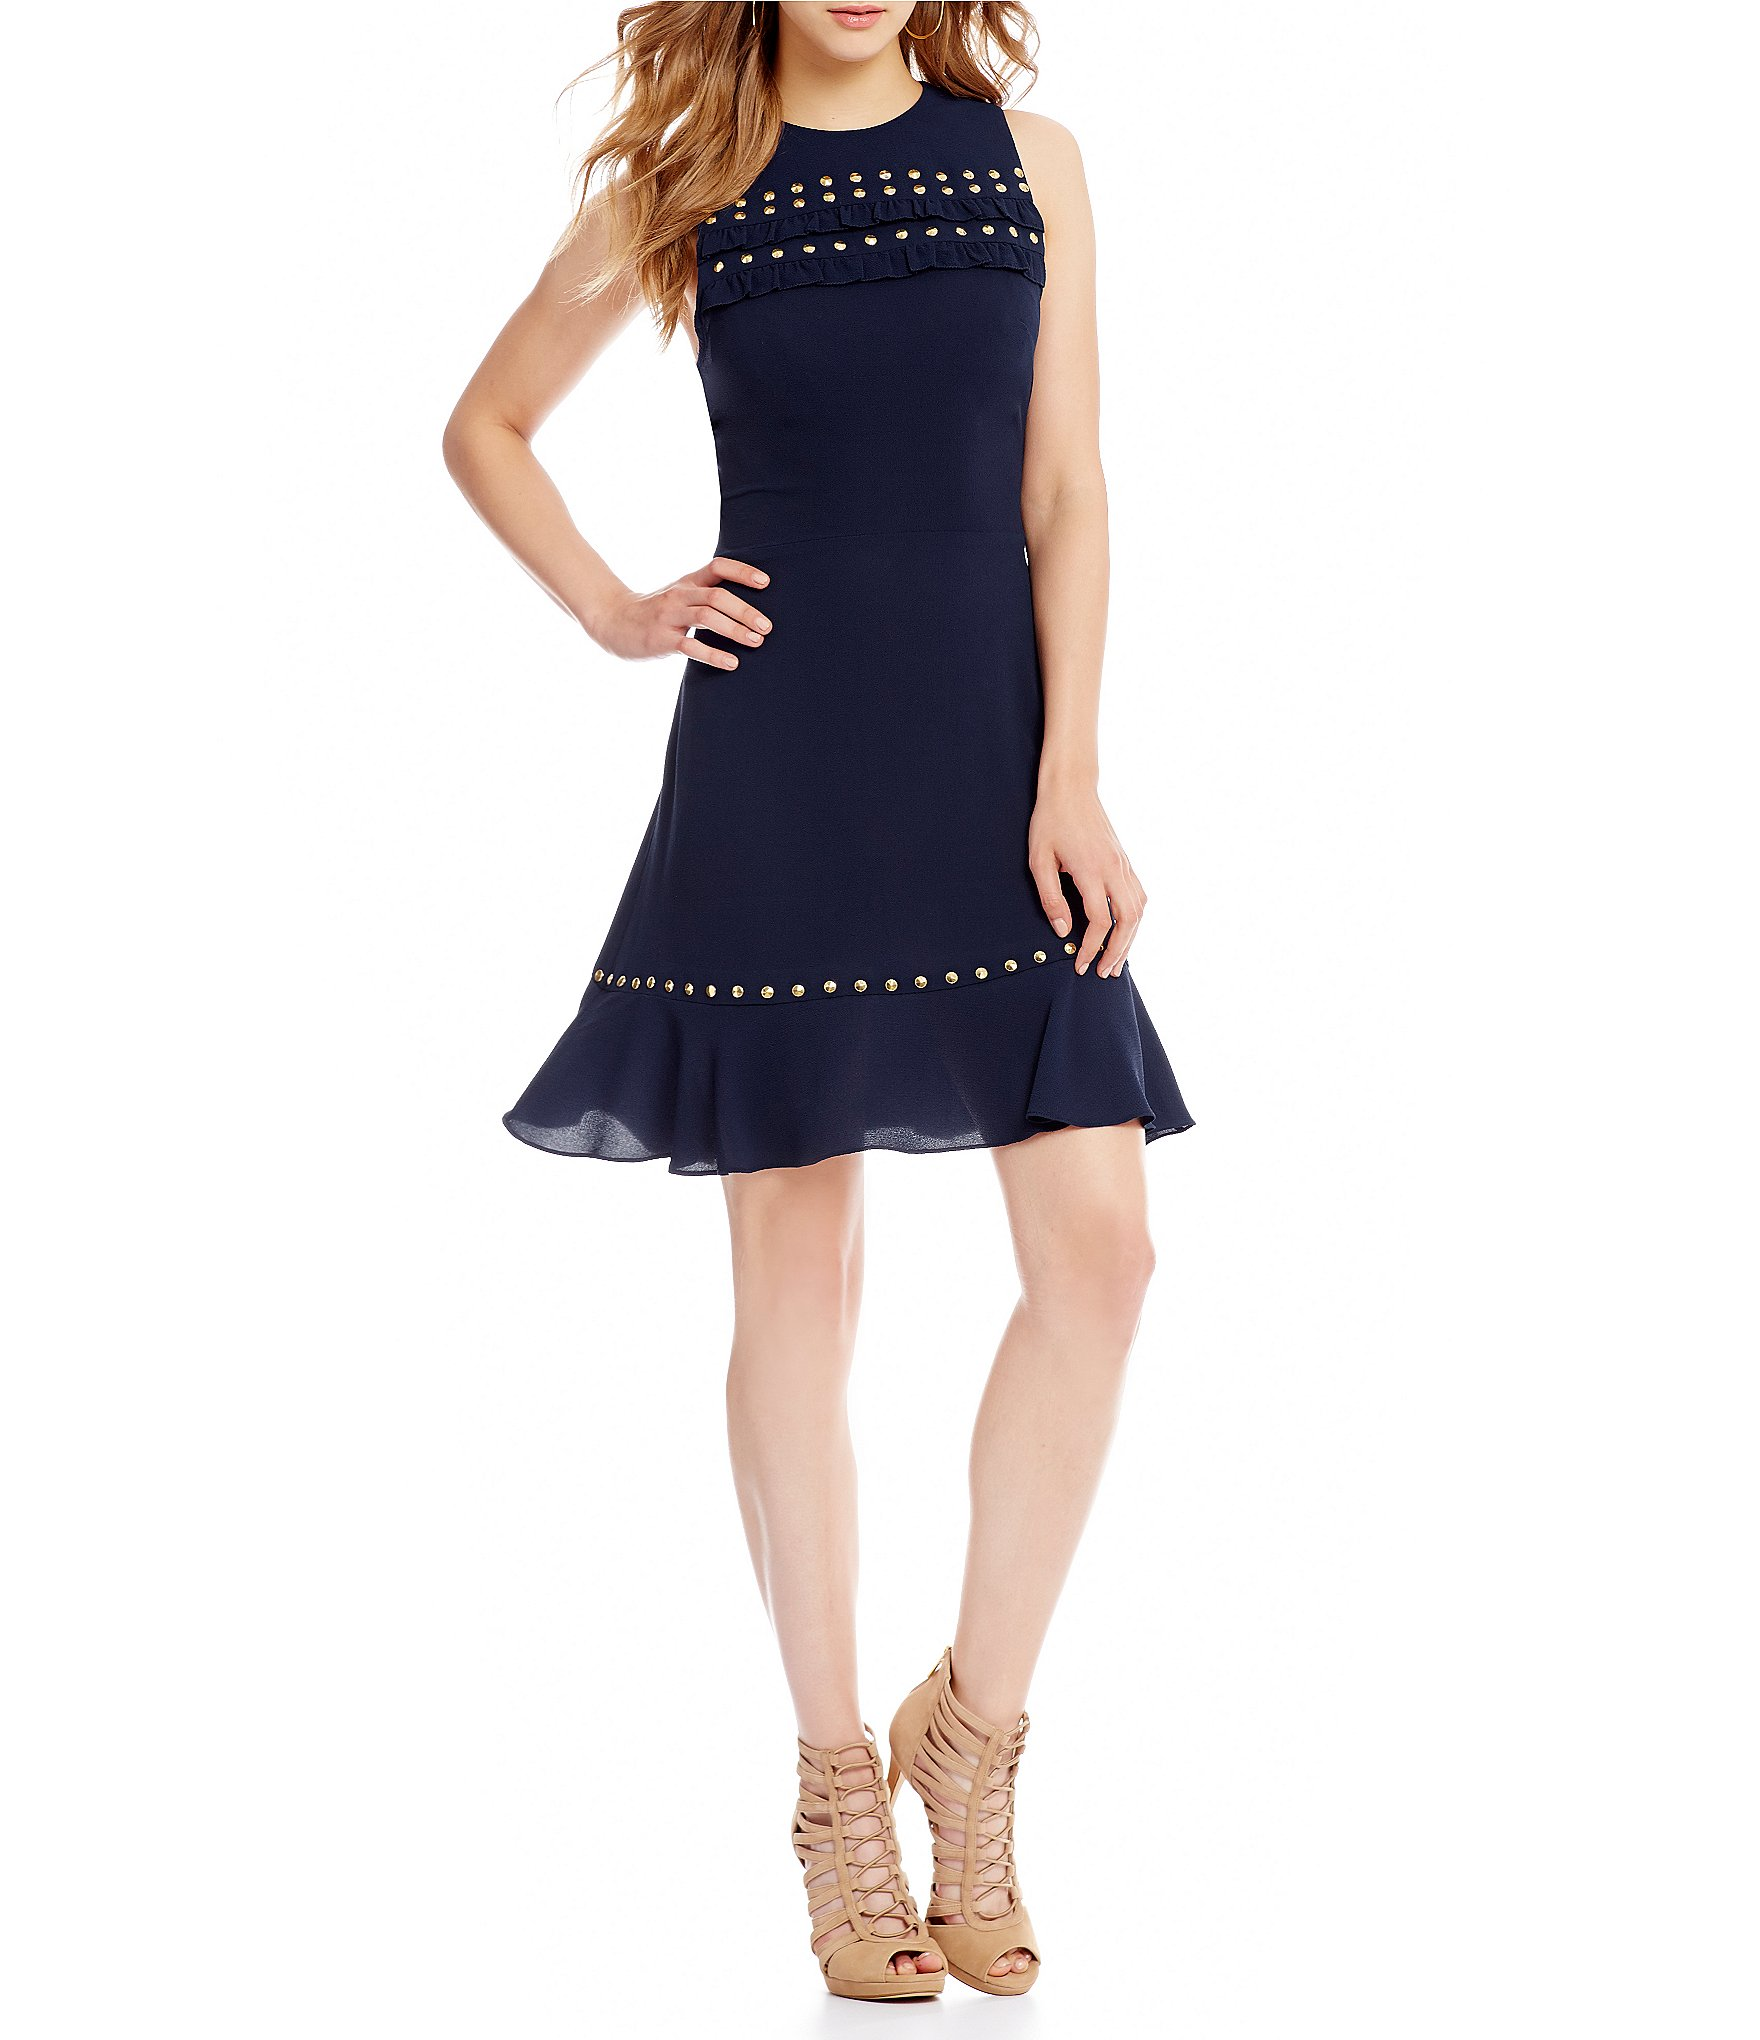 Buy michael kors gowns navy > OFF37% Discounted